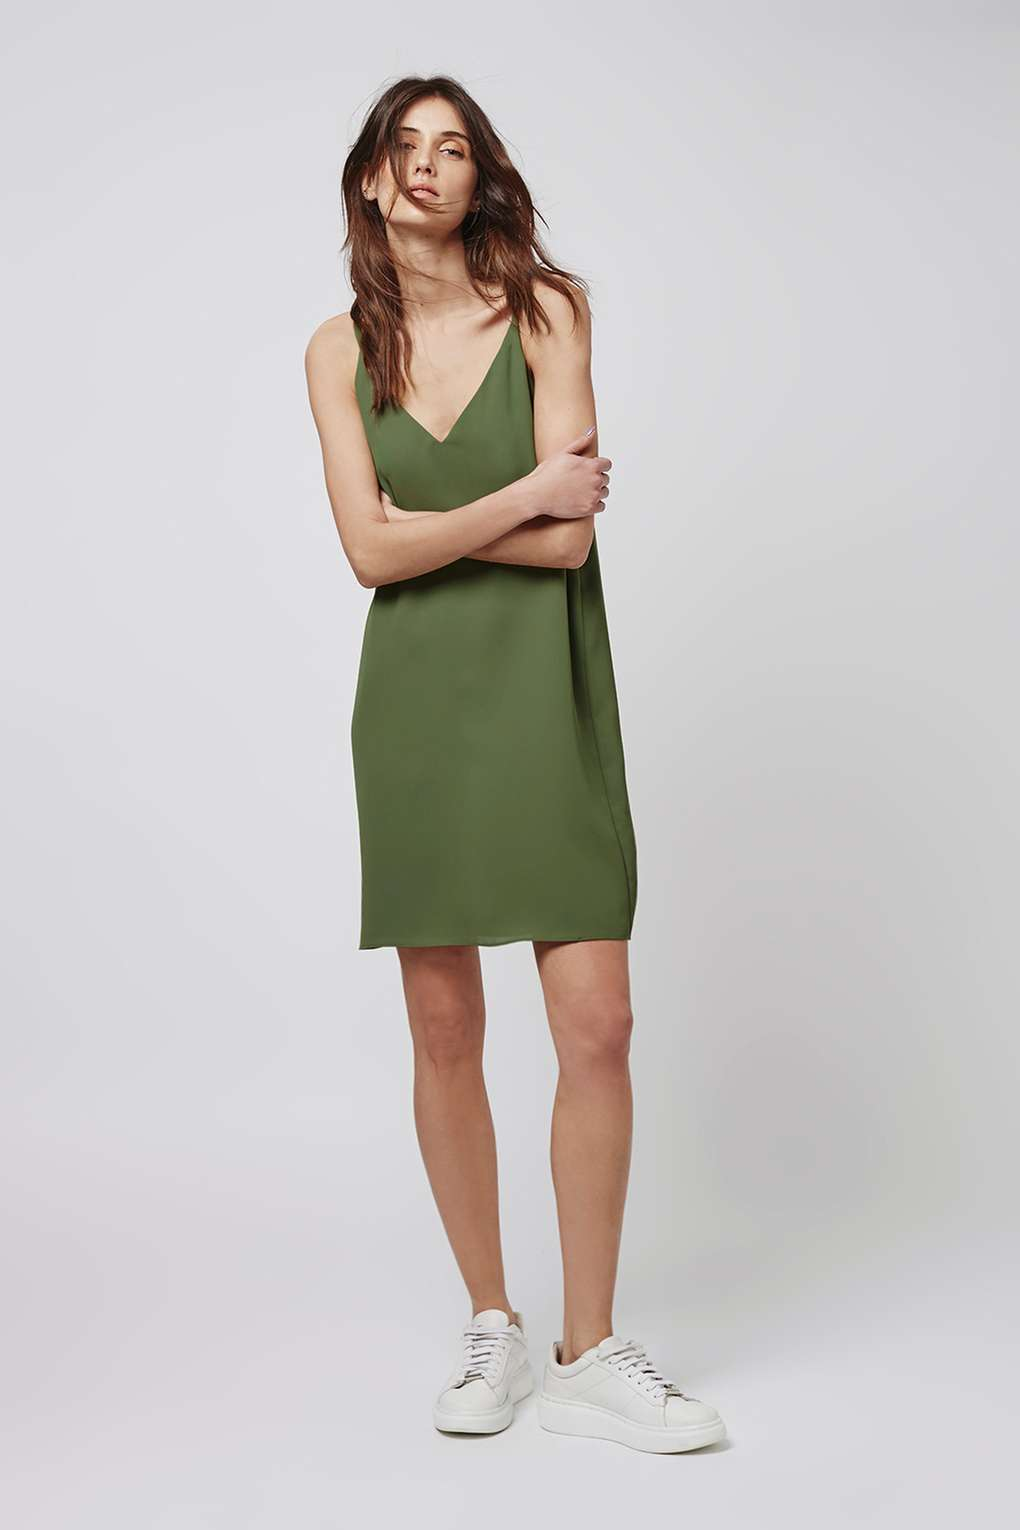 daytime5 - military olive green slip dress matte finish with white sneakers lookbook how to wear a slip dress srping summer 2016 trend (2)